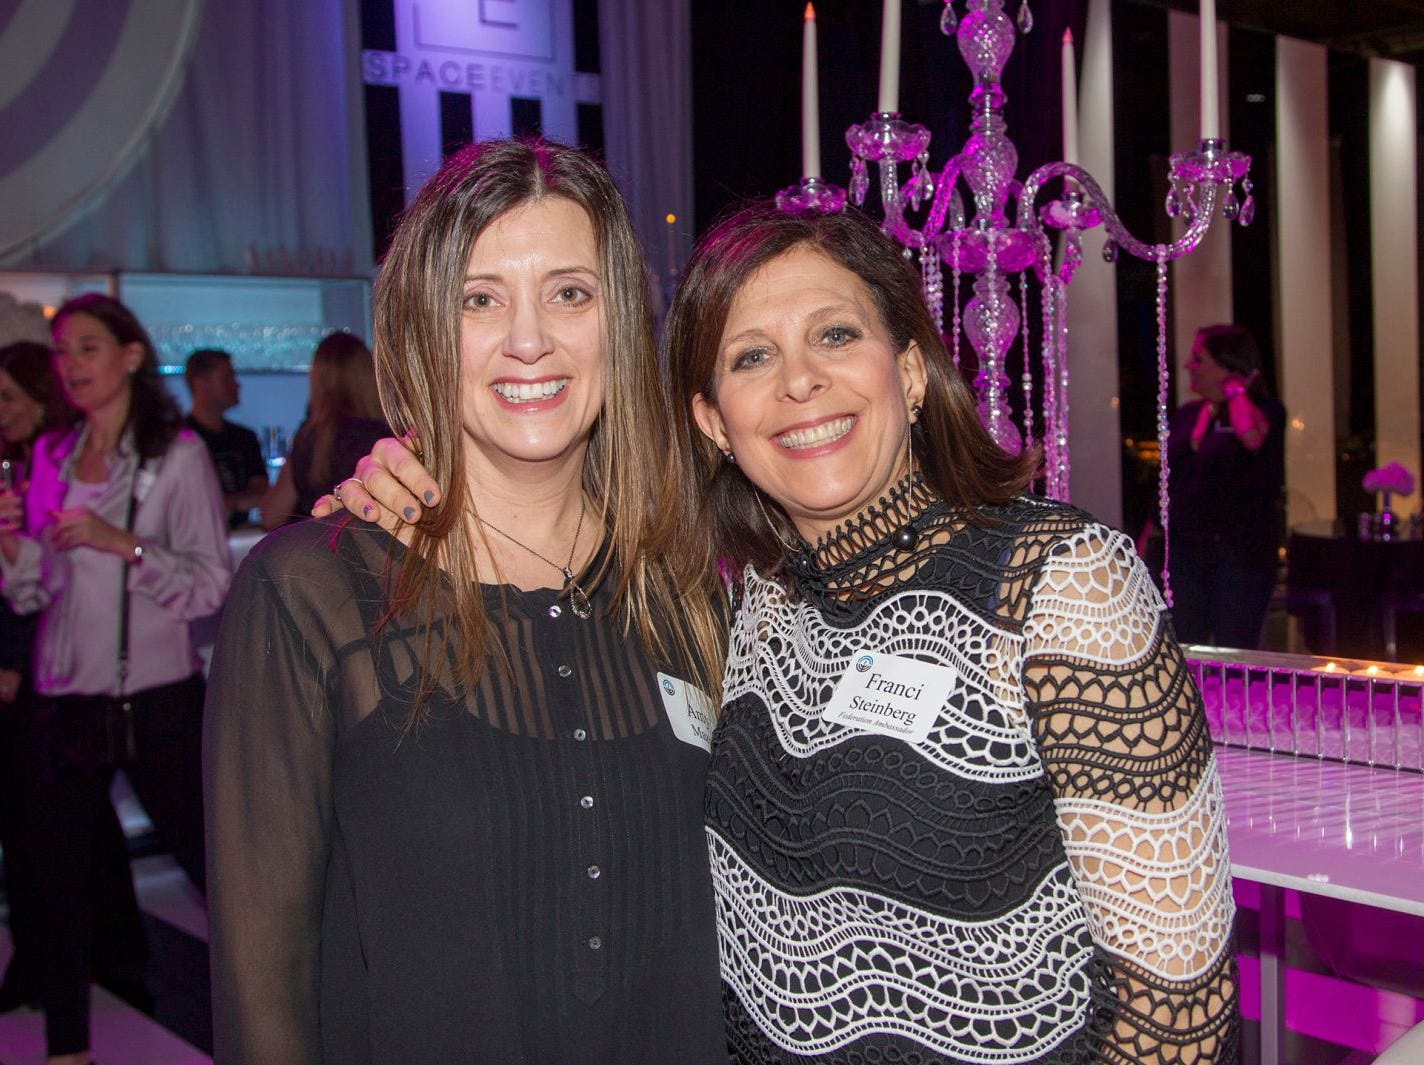 Amy Maza, Franci Steinberg. Jewish Federation of Northern New Jersey held its first Girl's Night Out dance party at Space in Englewood. 01/24/2019